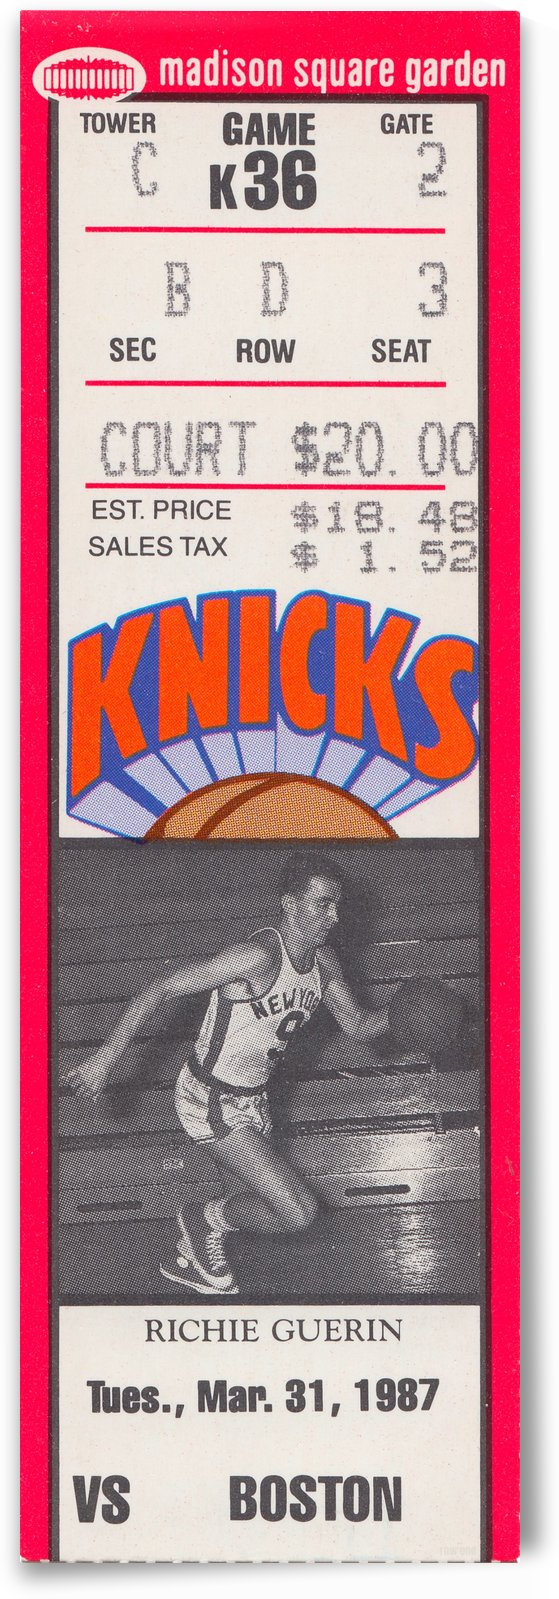 1987 New York Knicks vs. Boston Celtics Basketball Ticket Stub Art Reproduction by Row One Brand